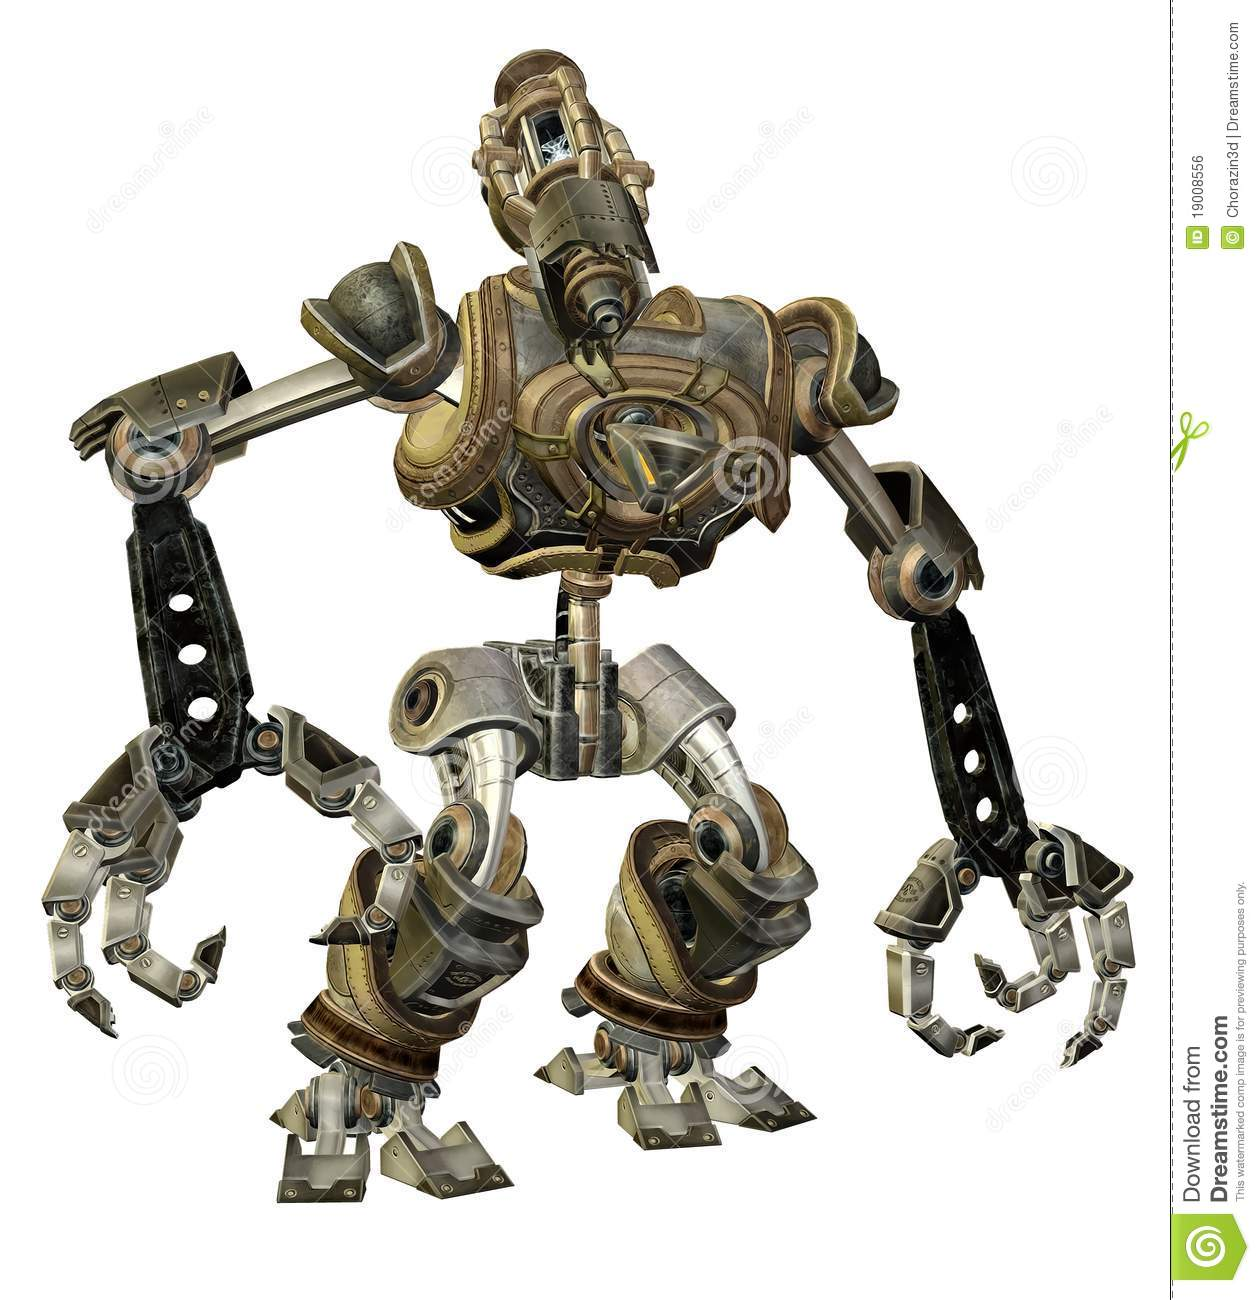 Steampunk Robot 1 Royalty Free Stock Image - Image: 19008556